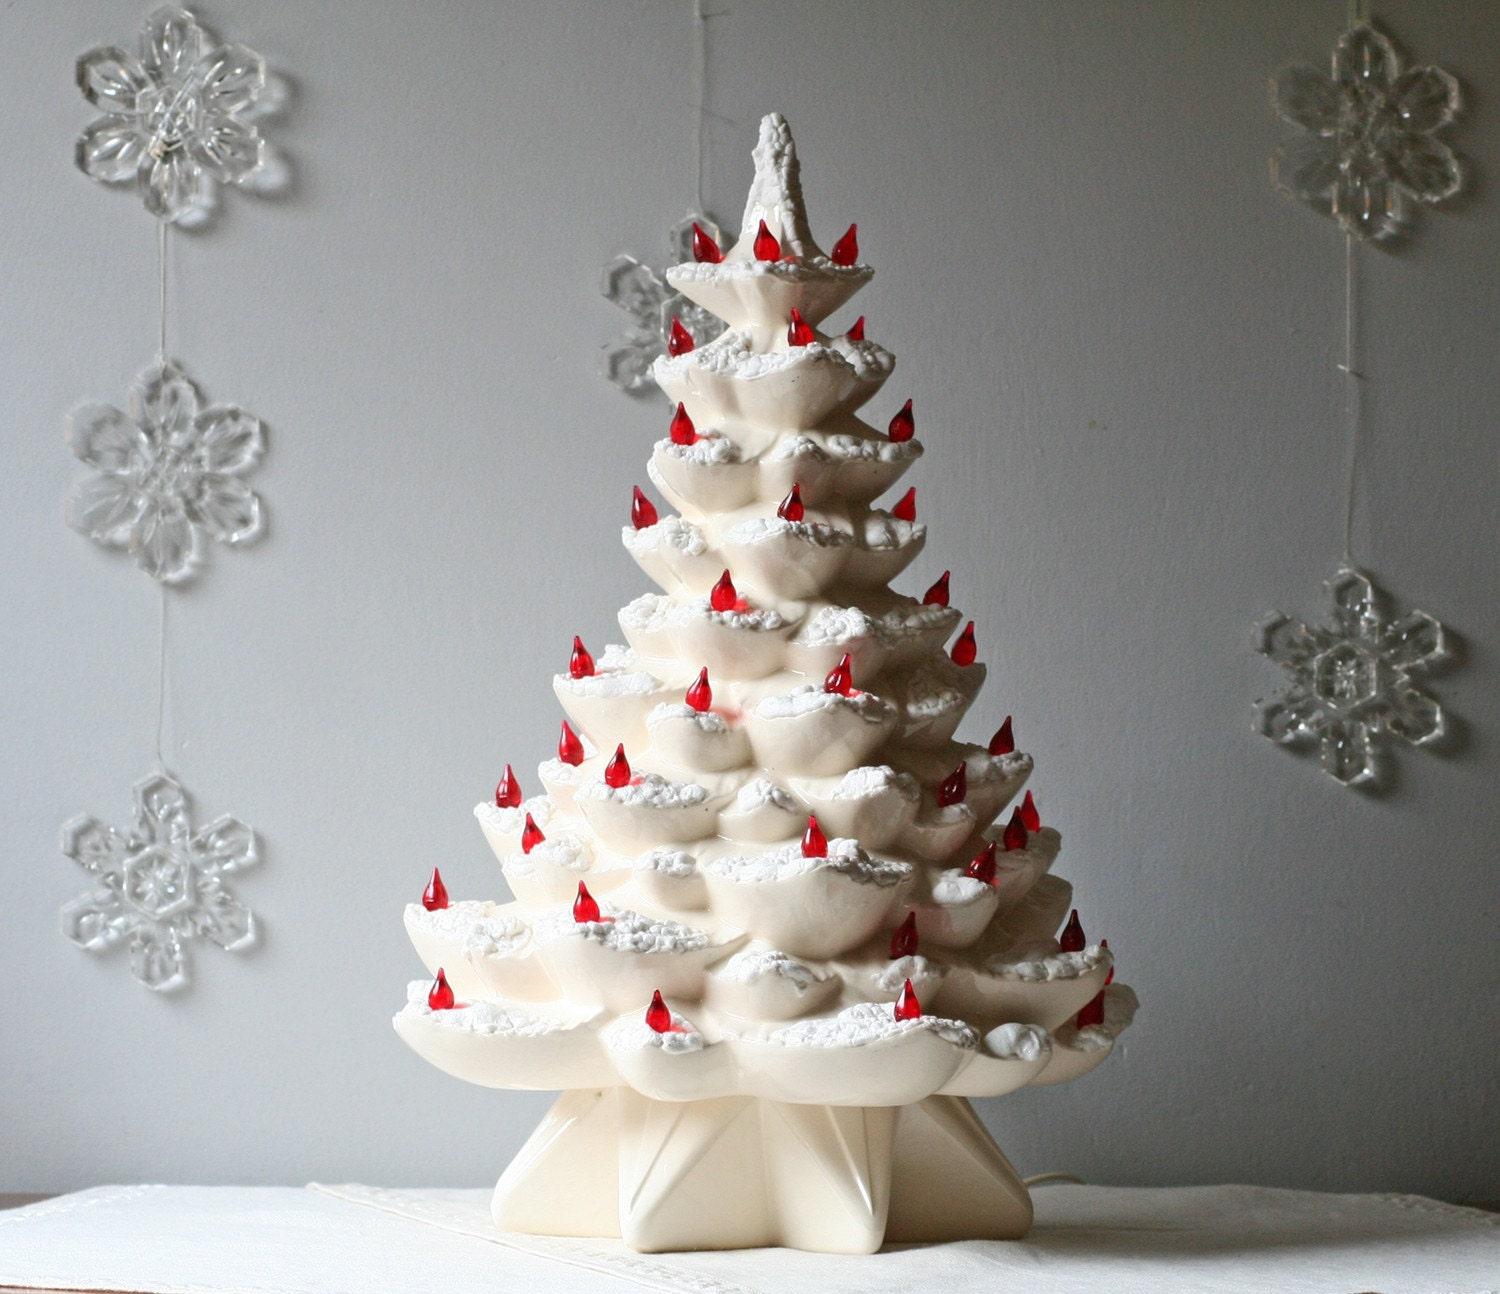 Vintage 1960s White Ceramic Christmas Tree